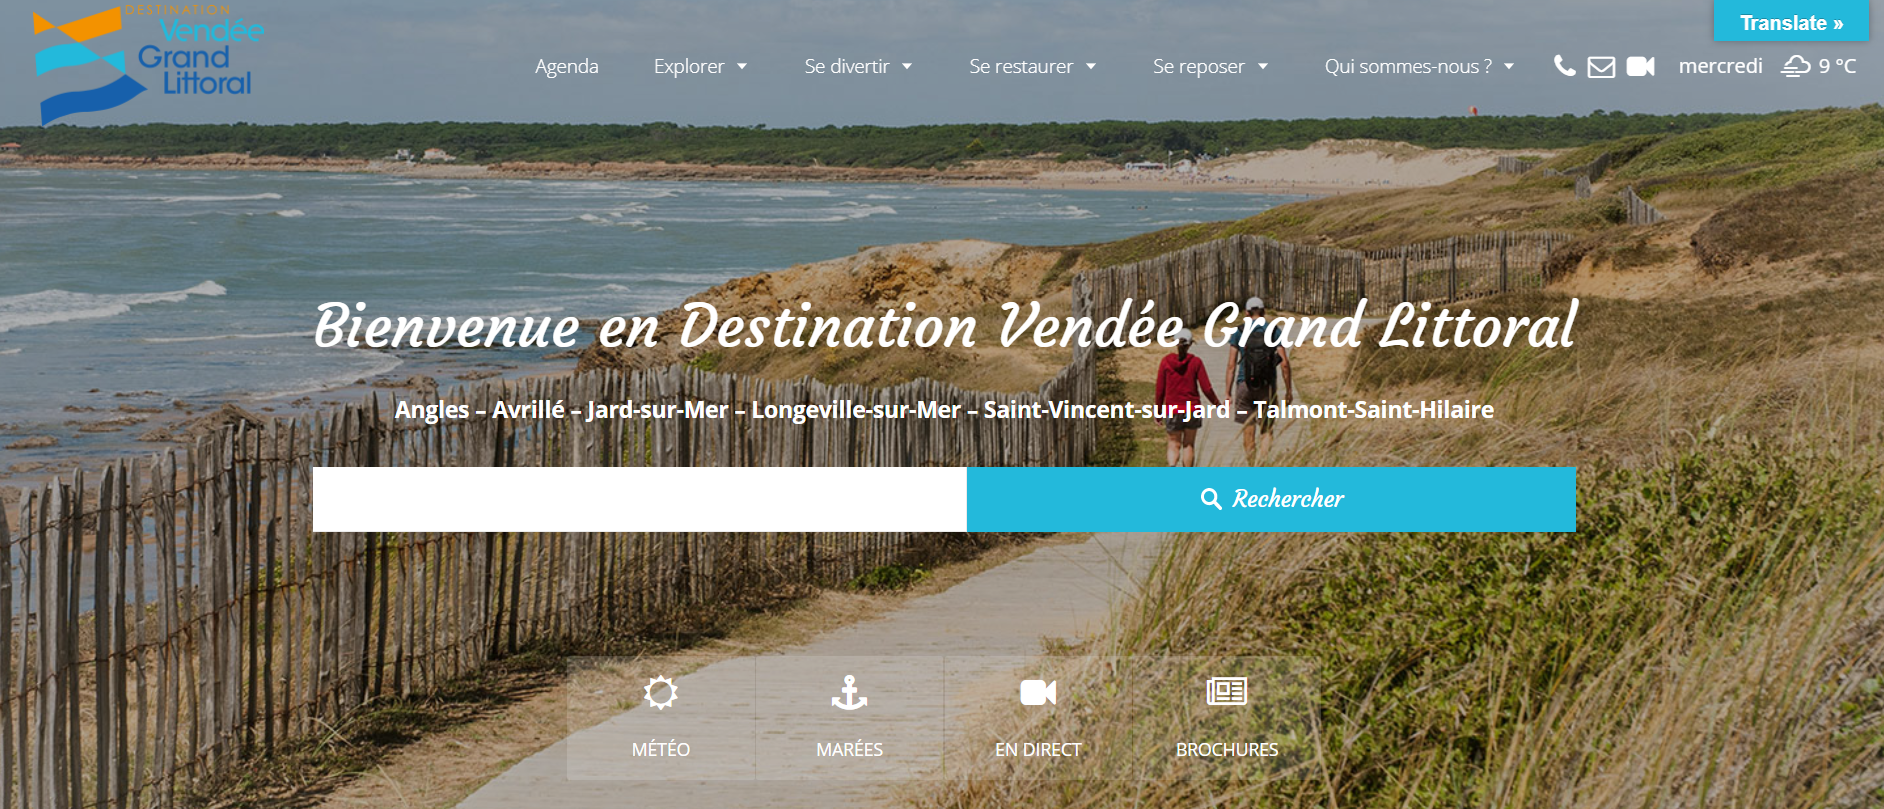 Office de tourisme destination vend e grand littoral - Office de tourisme de longeville sur mer ...